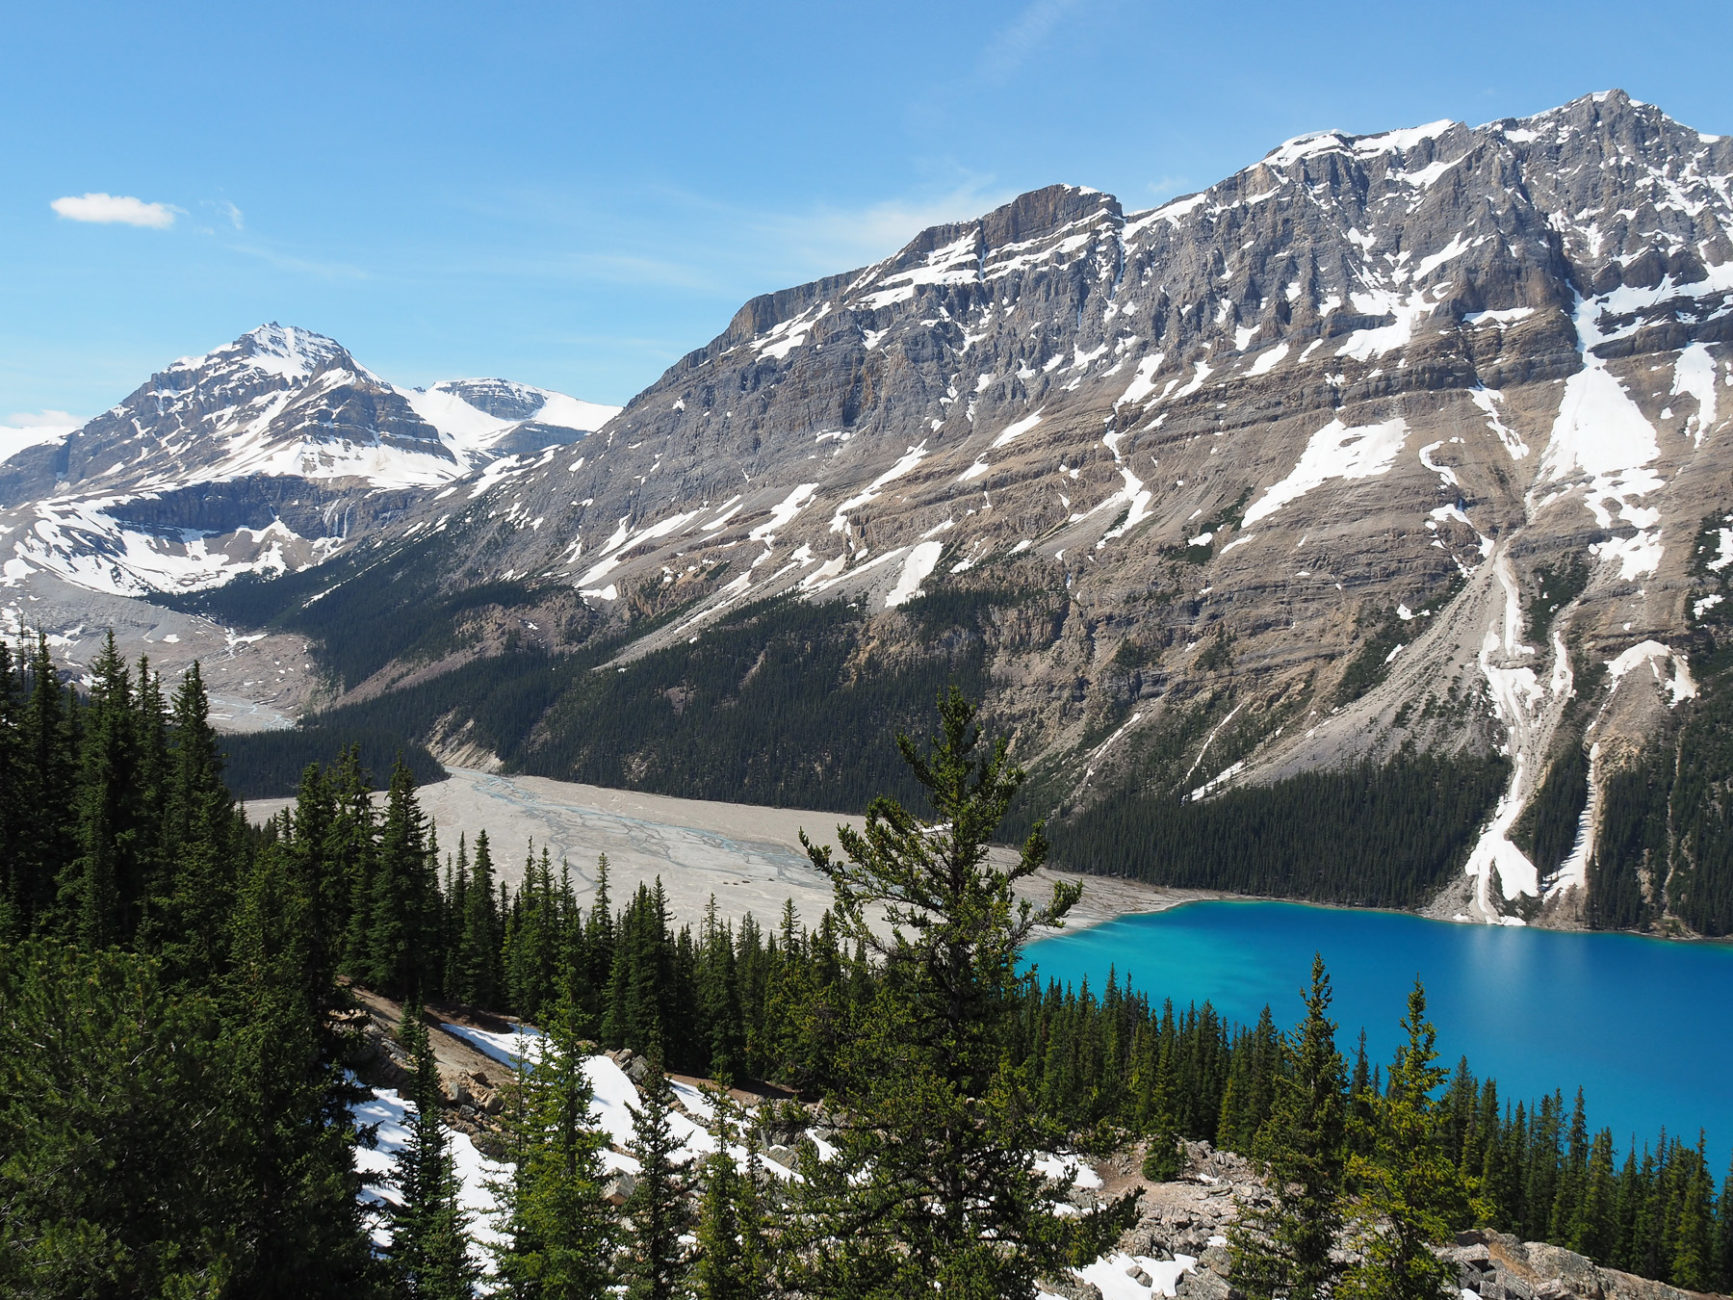 Peyto Lake - so blau!